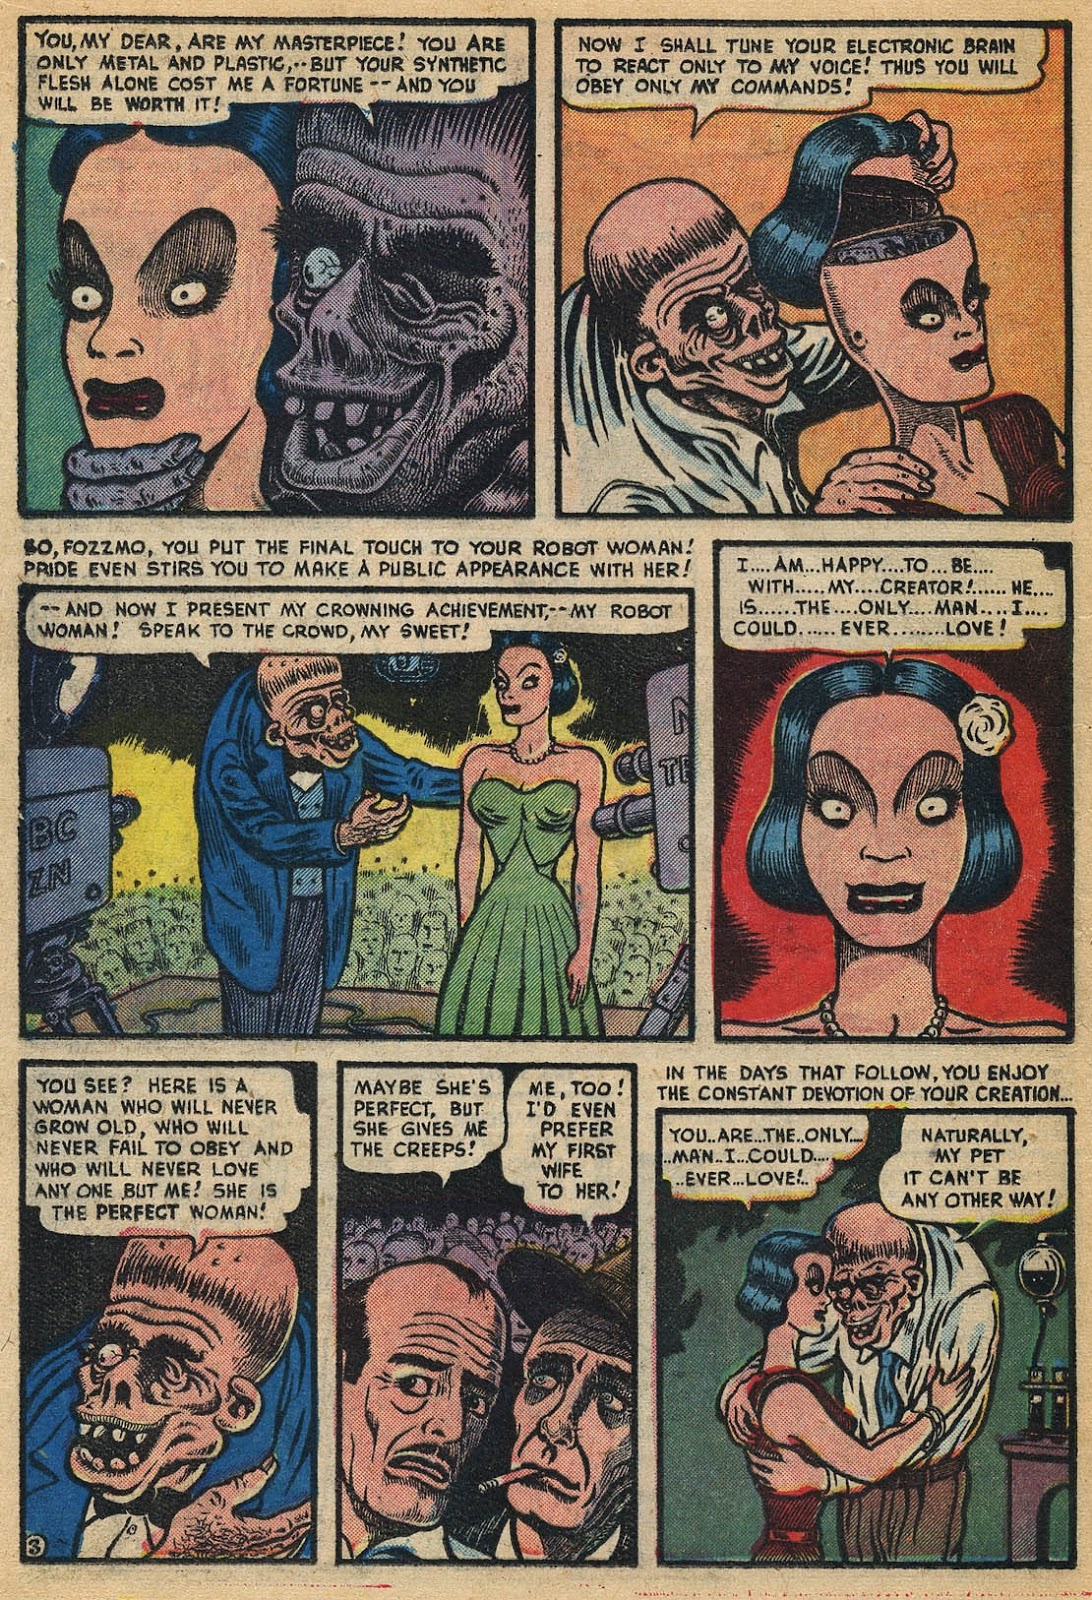 basil-wolverton-robot-woman-weird-mysteries-002-3_cr